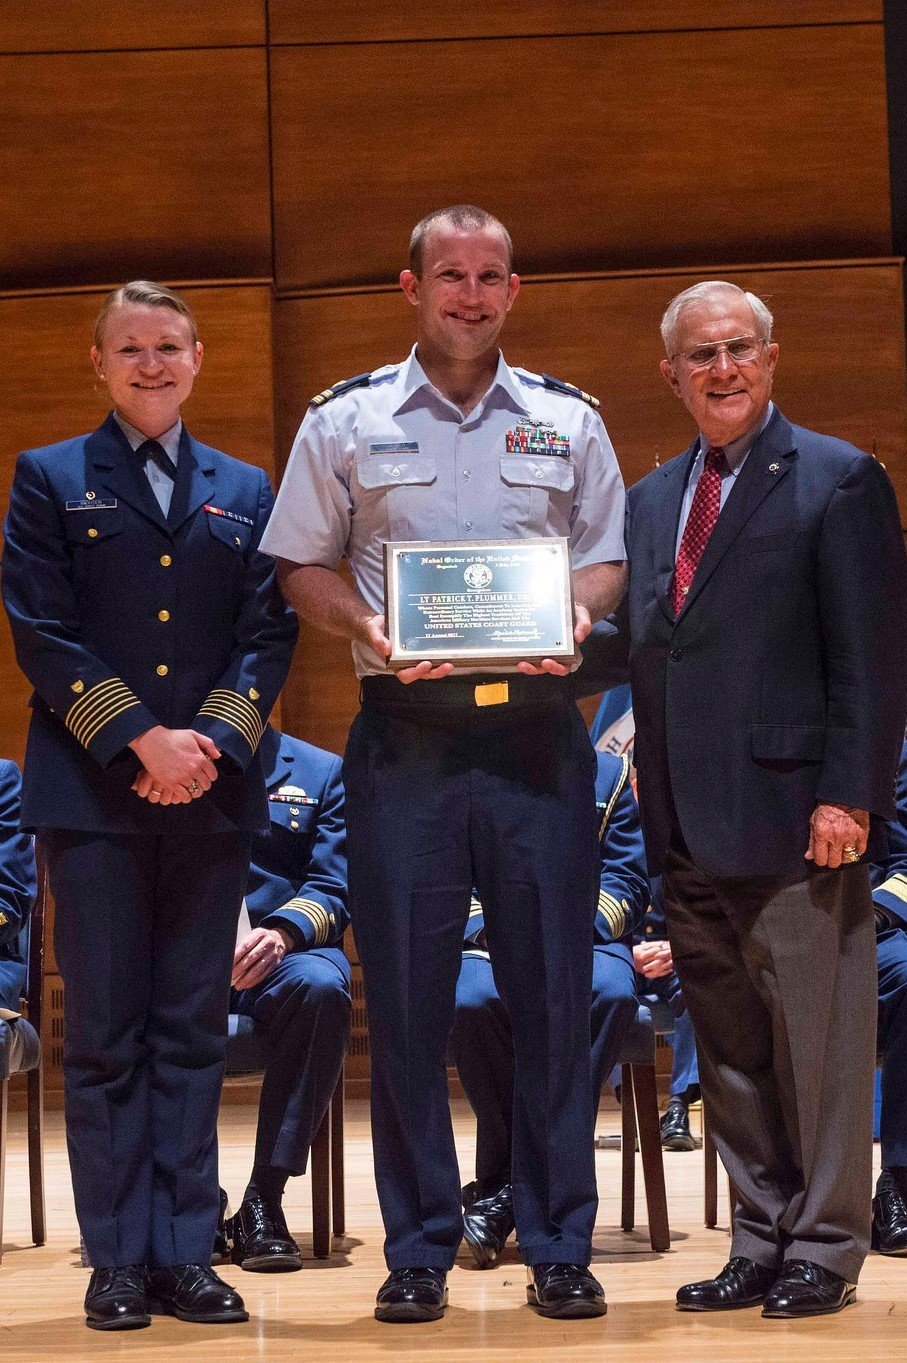 The 2017 USCGA JO Instructor of the year was presented to LT Patrick Plummer by RADM William F. Merlin, USCG (Ret) and the Regimental Commander, Cadet First Class Dakota Richter.